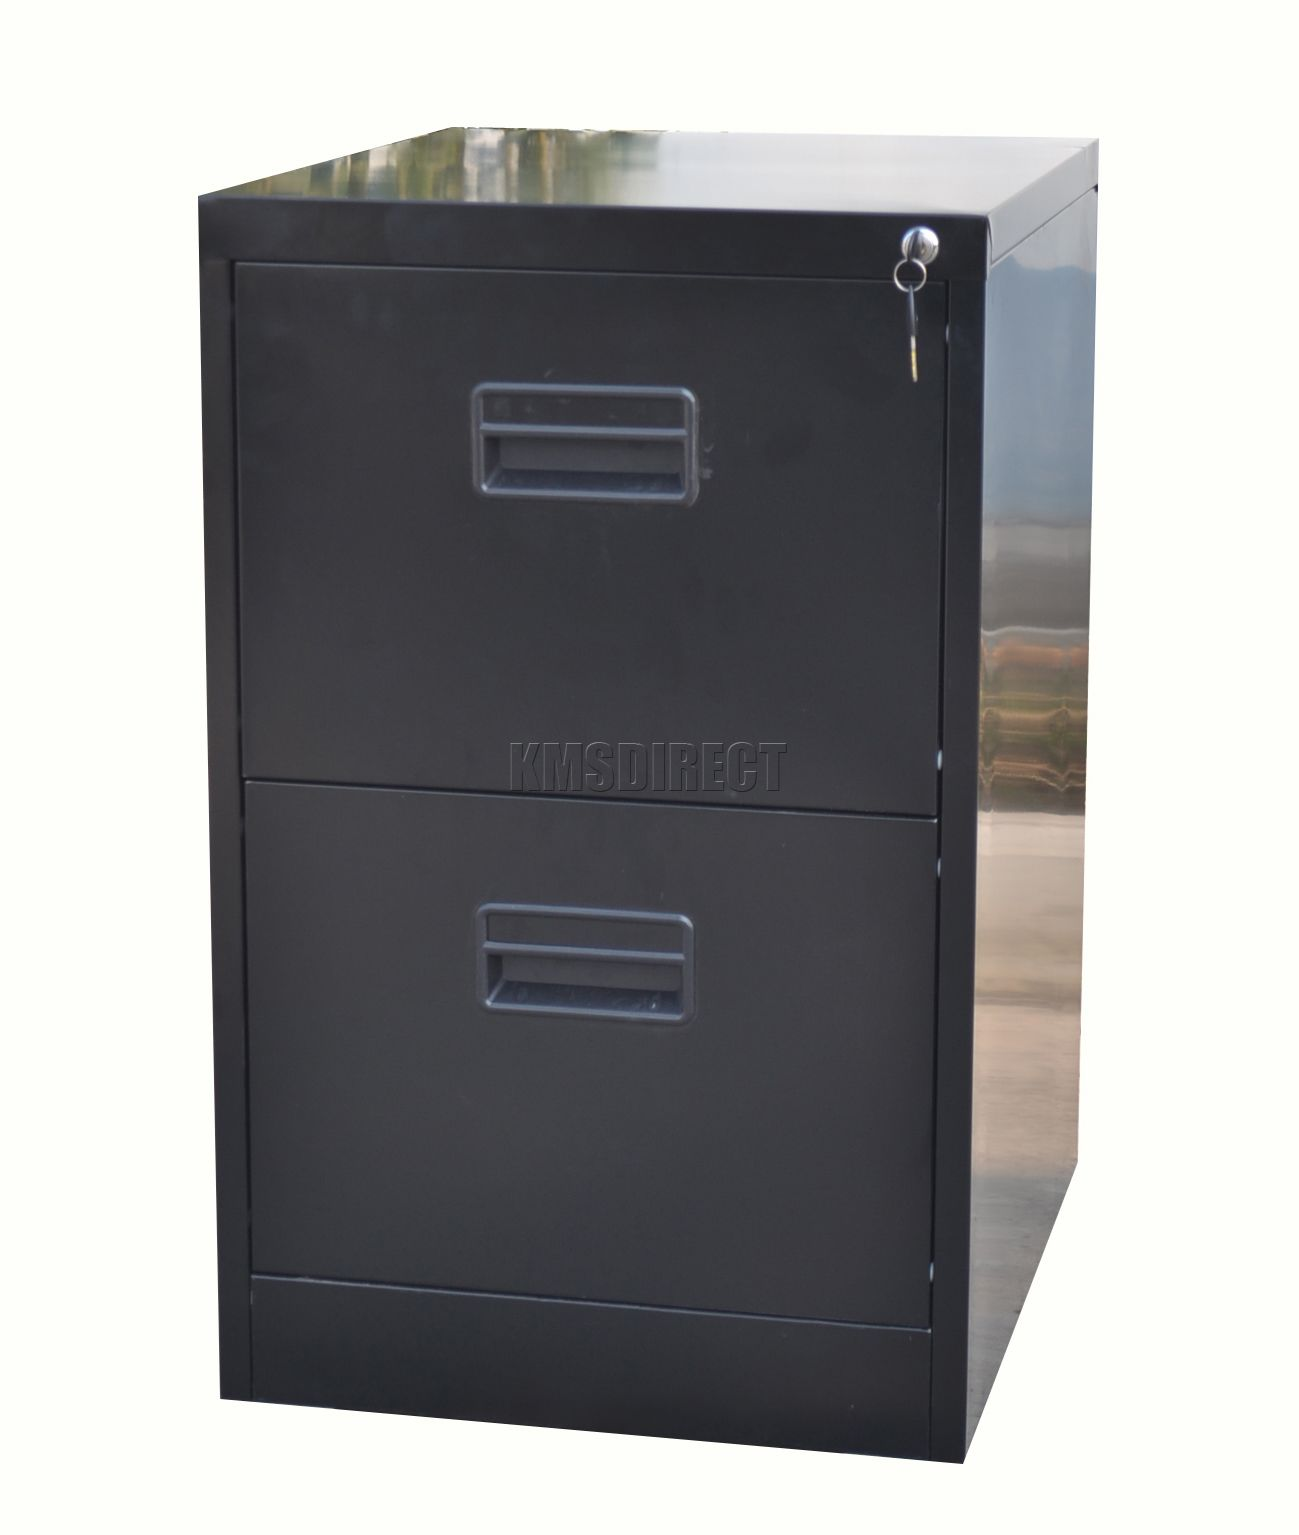 Black Home Office Filing Cabinet 2 Drawer A4 File Storage Metal Steel Lockable